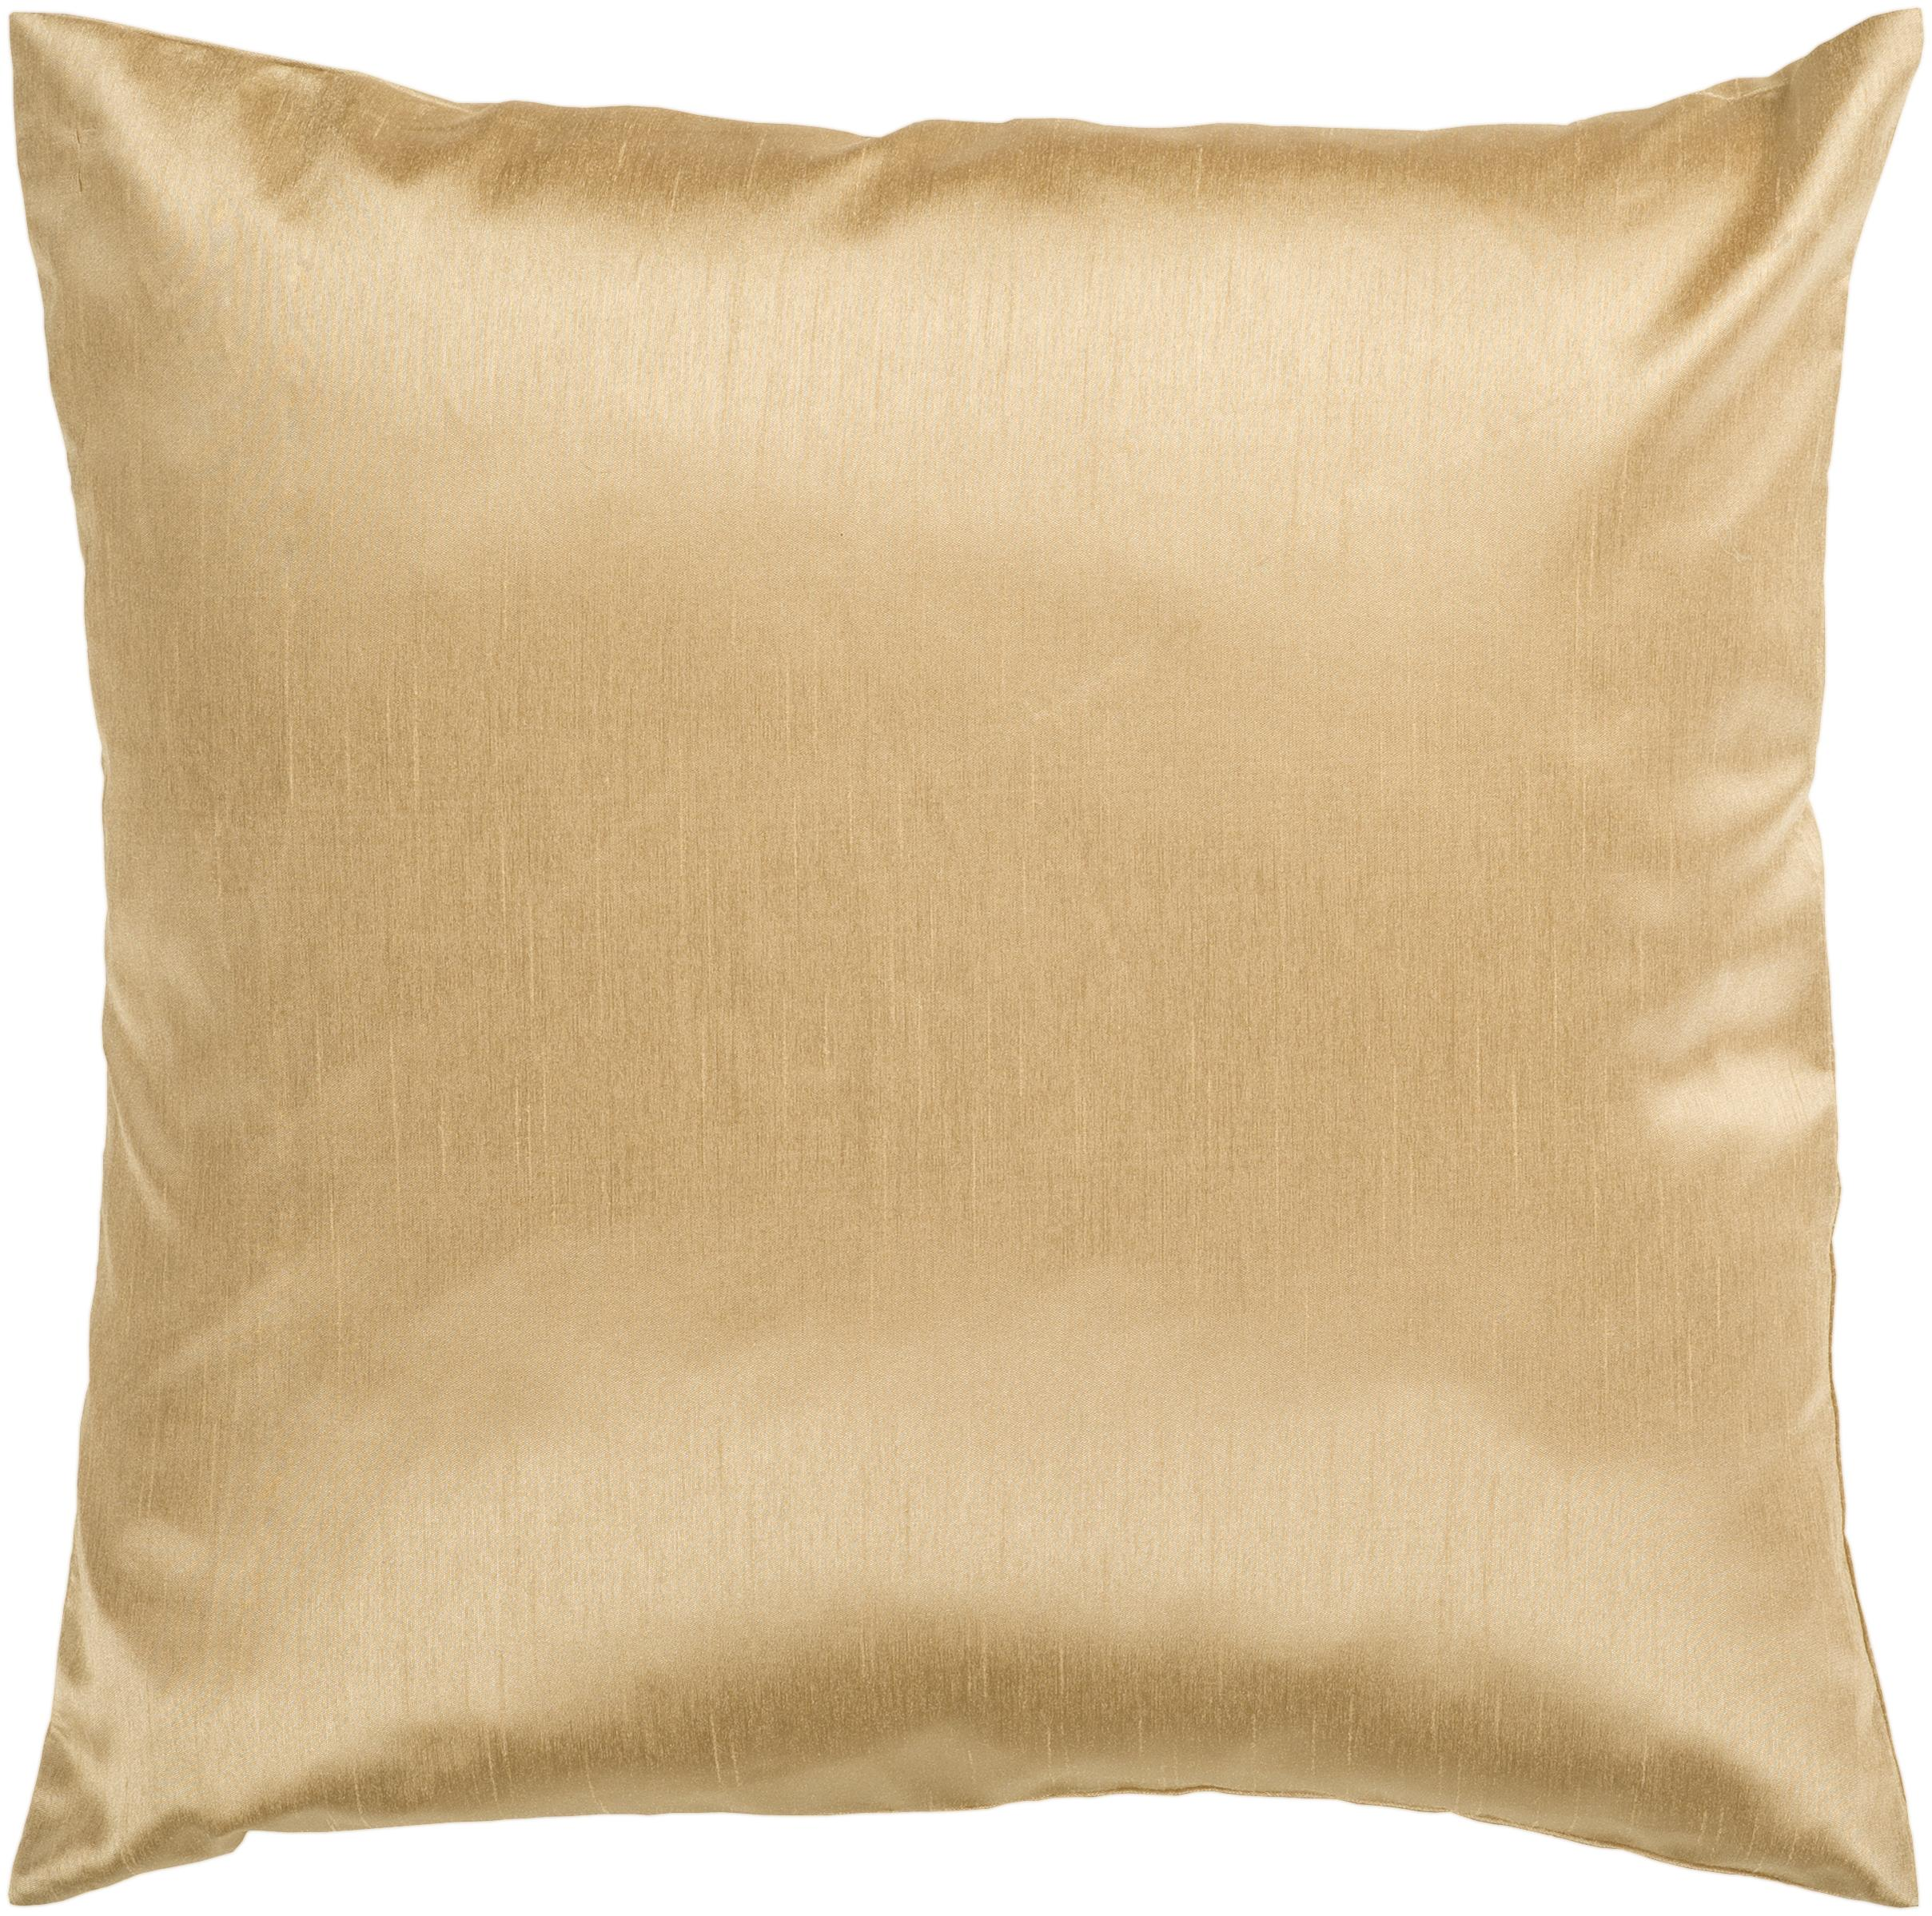 "Surya Pillows 18"" x 18"" Pillow - Item Number: HH038-1818P"